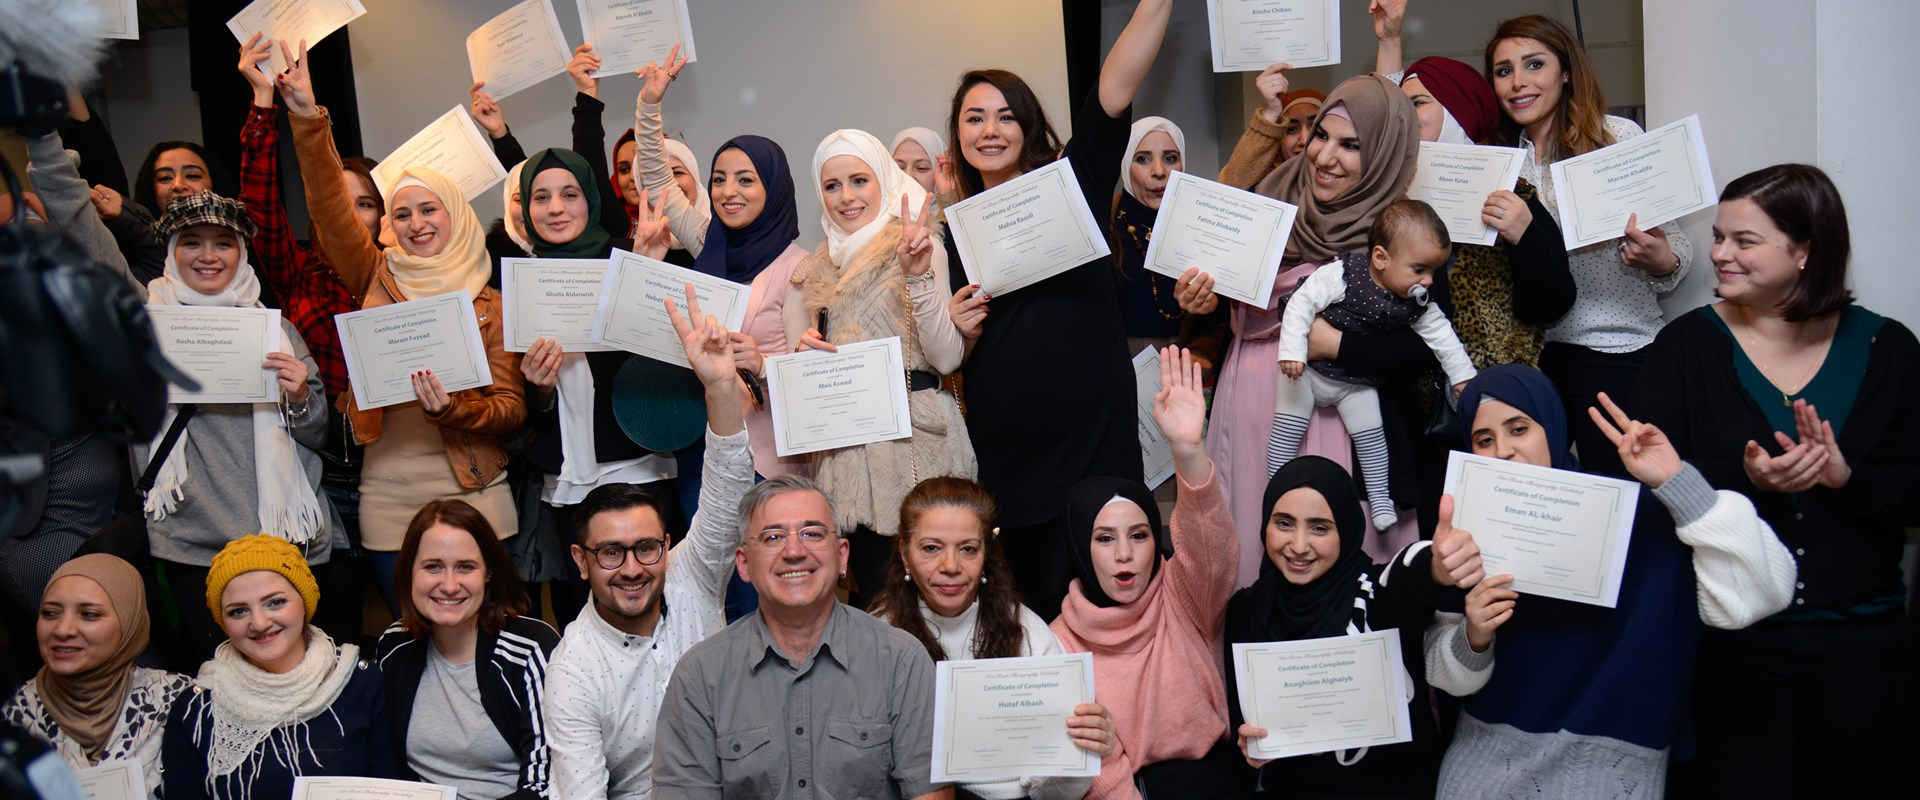 Prof. Kirkov on the Graduation Ceremony with his New Roots Students in Vienna <br />